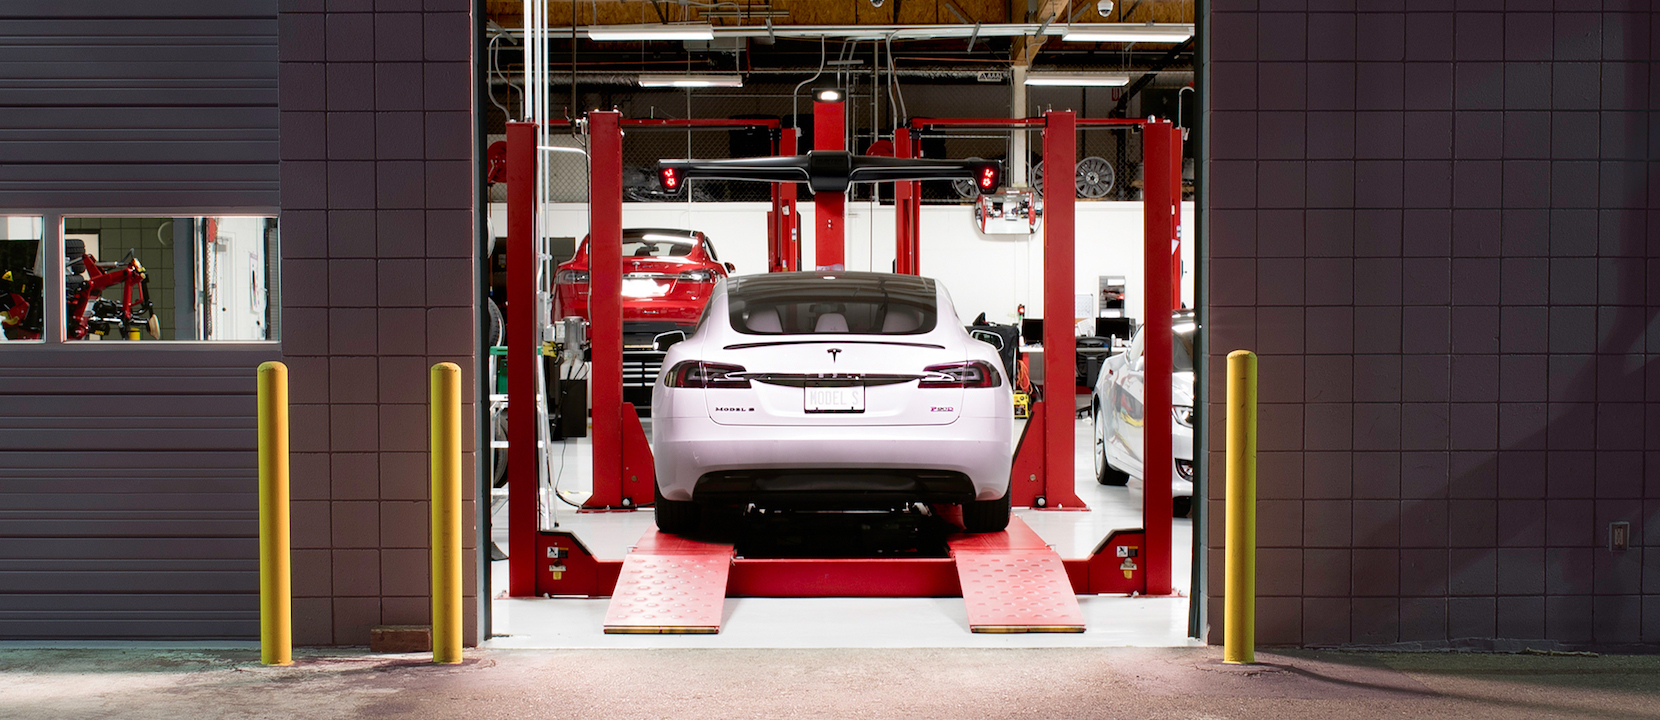 Tesla owners can now self-schedule service appointments online